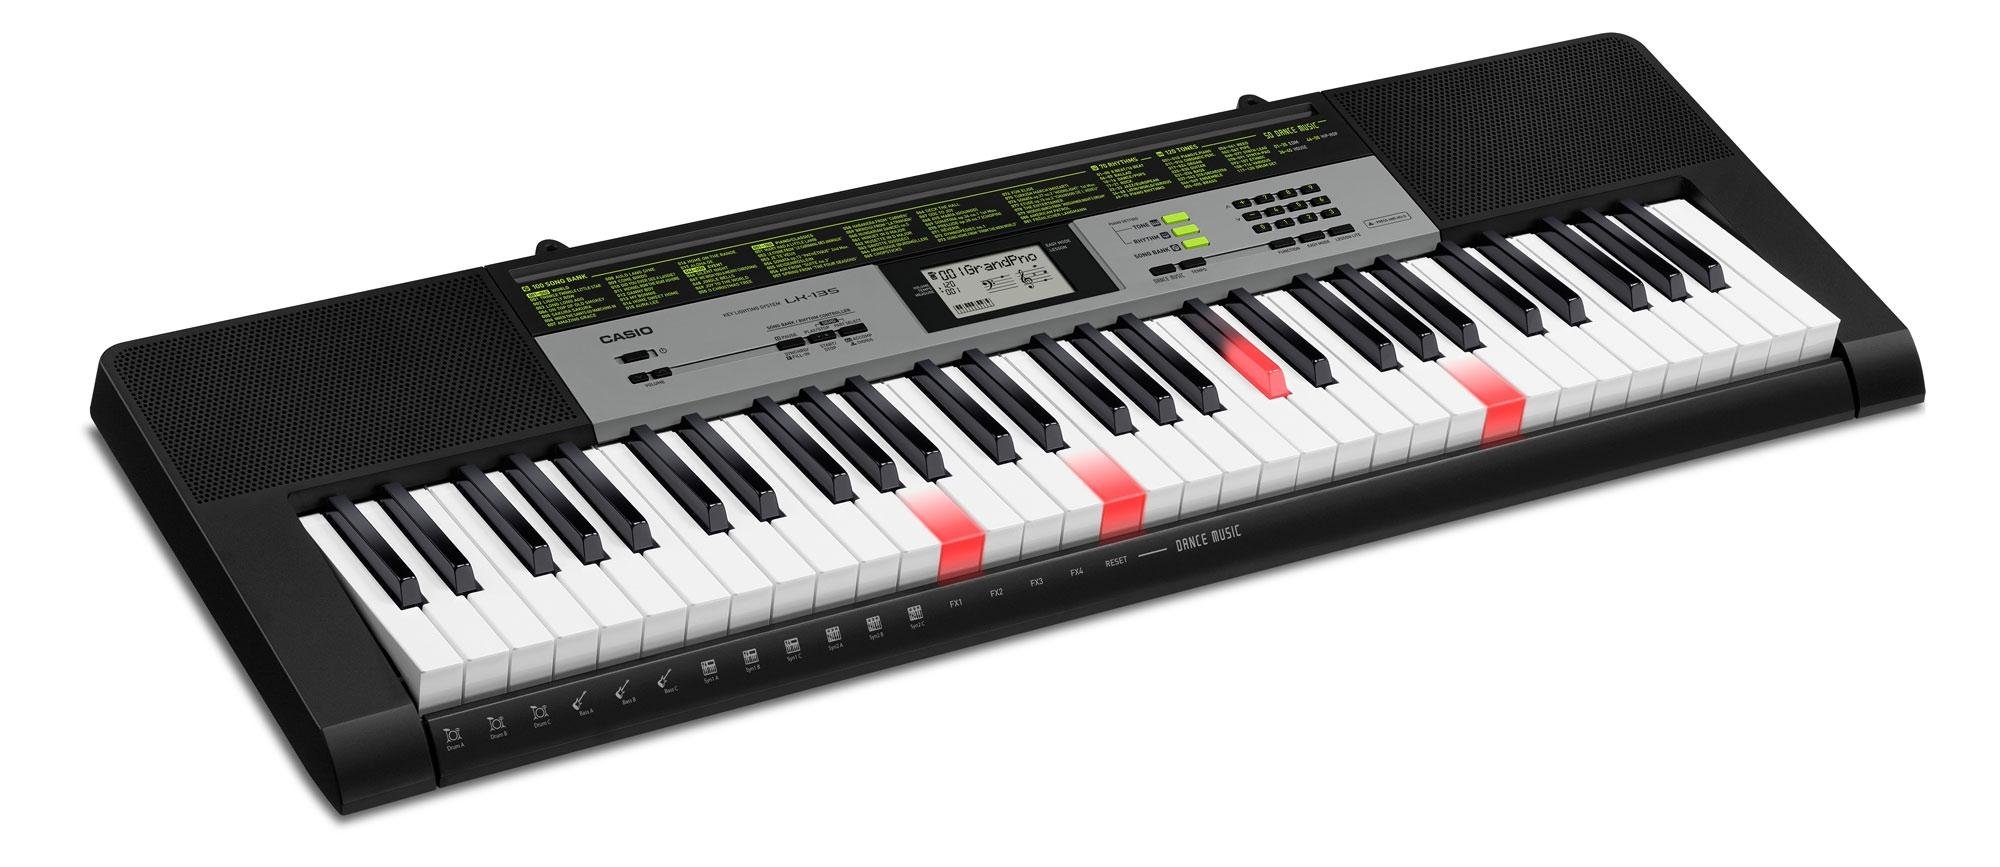 Excellent Performance With A MIDI Keyboard - Casio LK 135